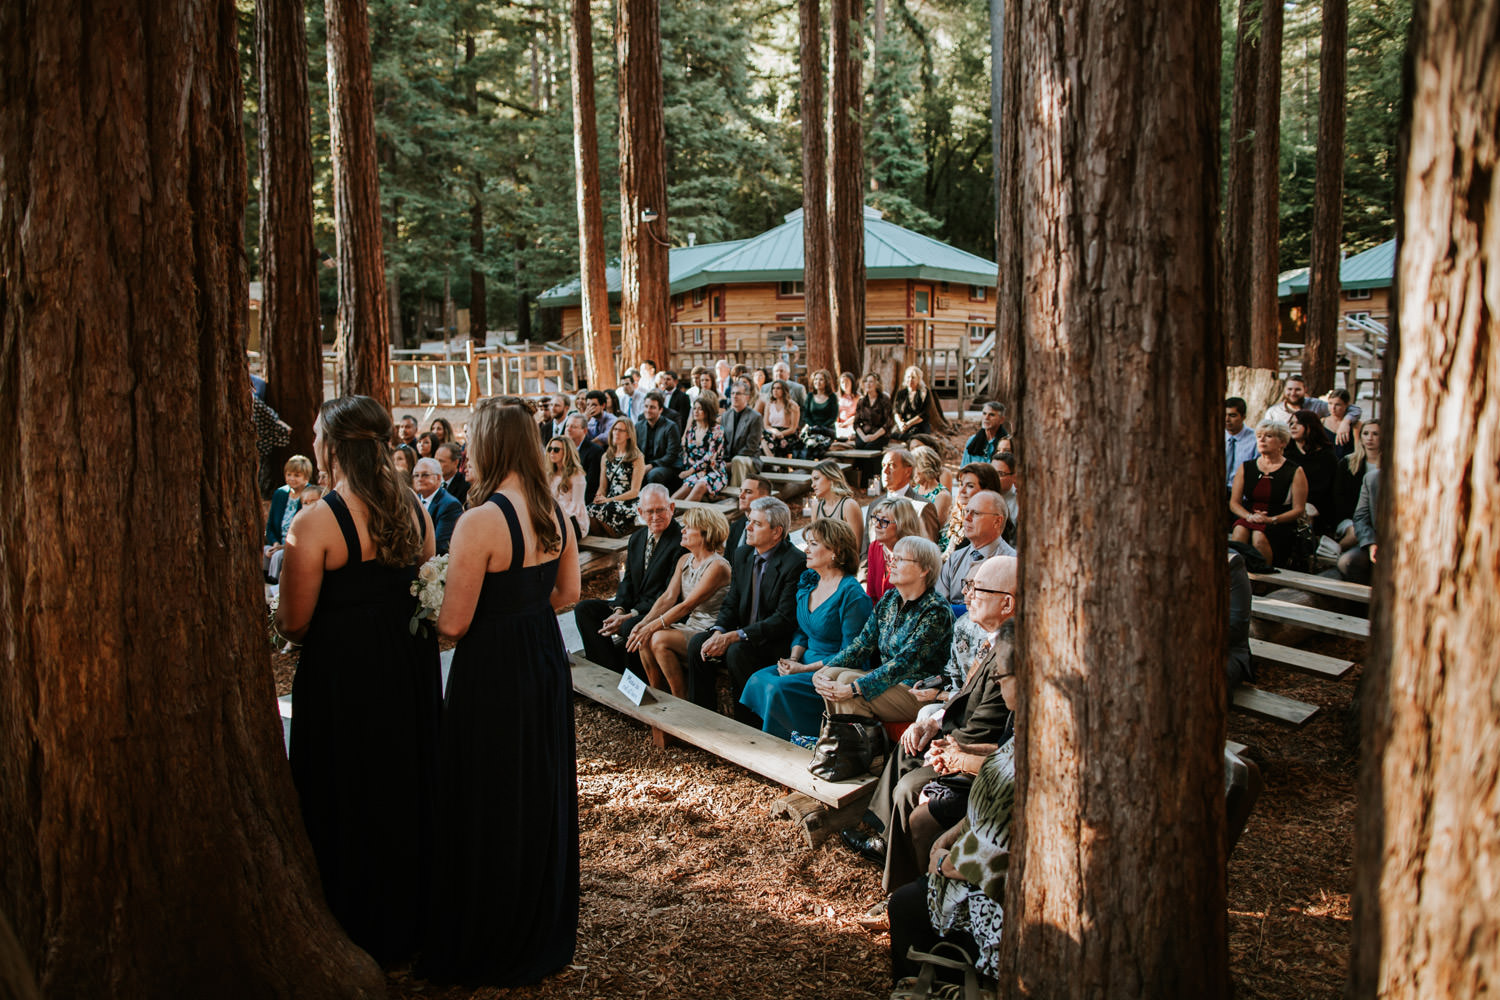 Picture of the guests sitting during wedding ceremony at YMCA Camp Campbell